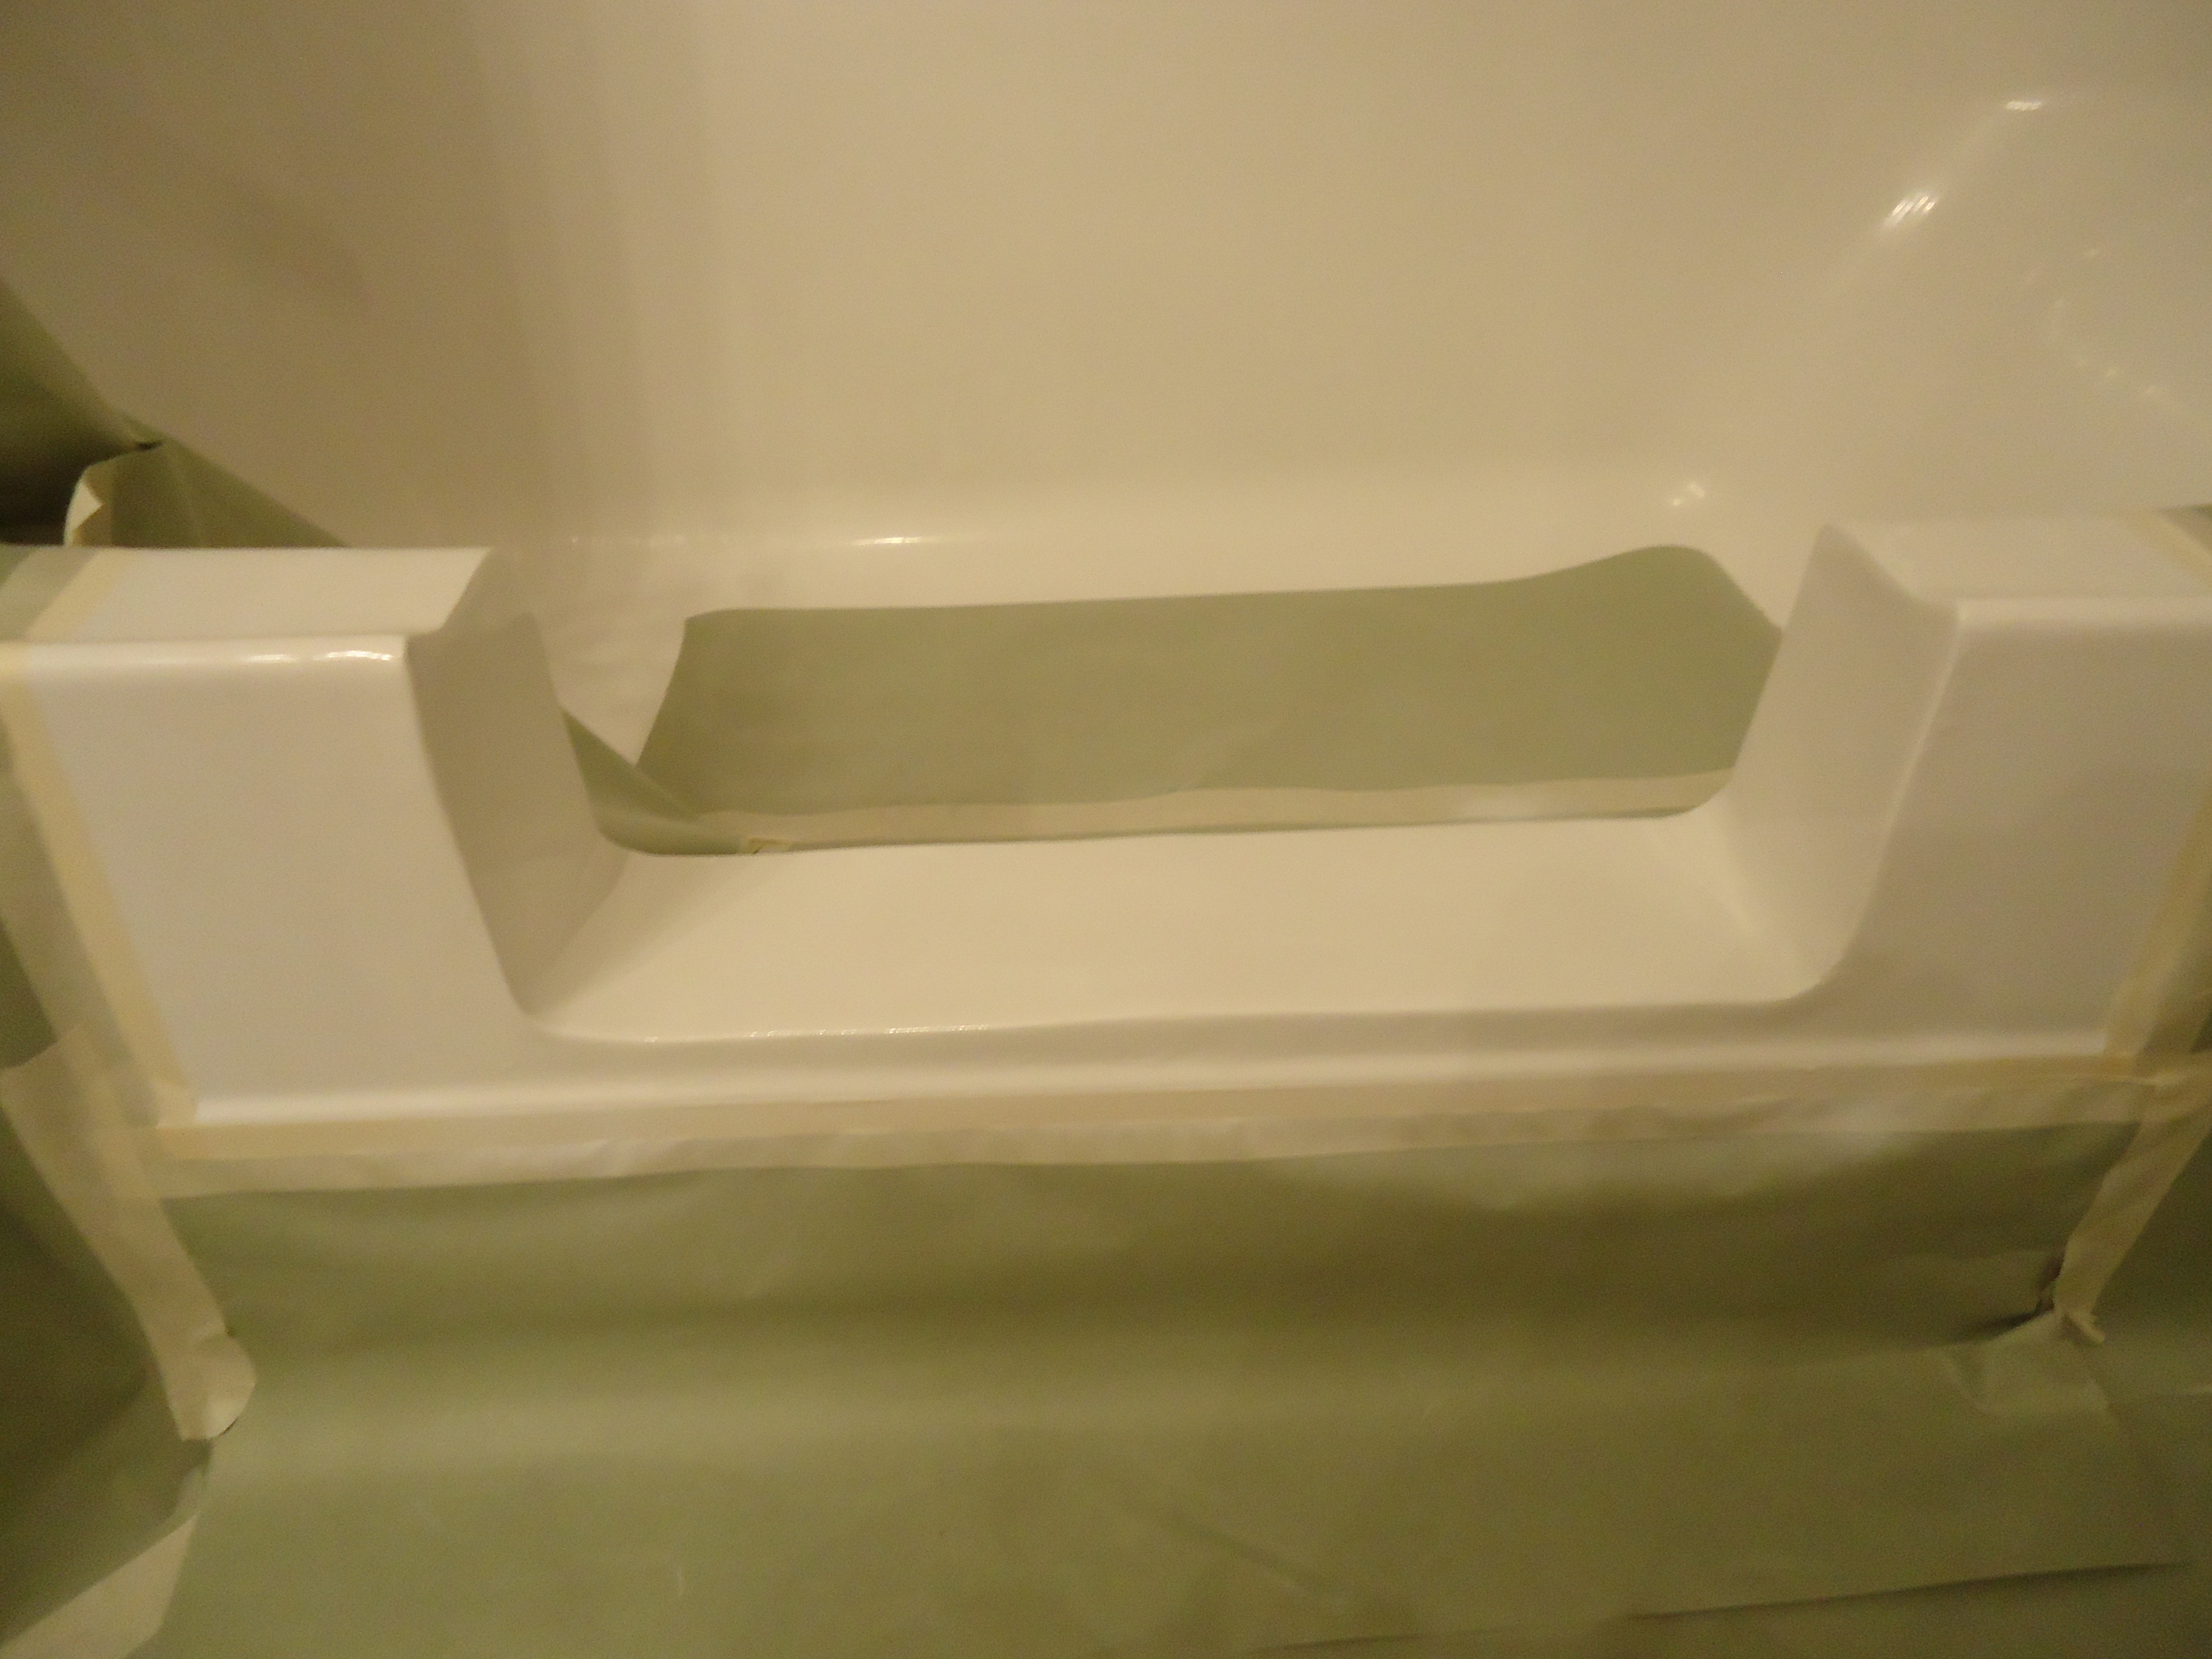 tub fiberglass insert patented thru manufacturing walk img prolux enhanced